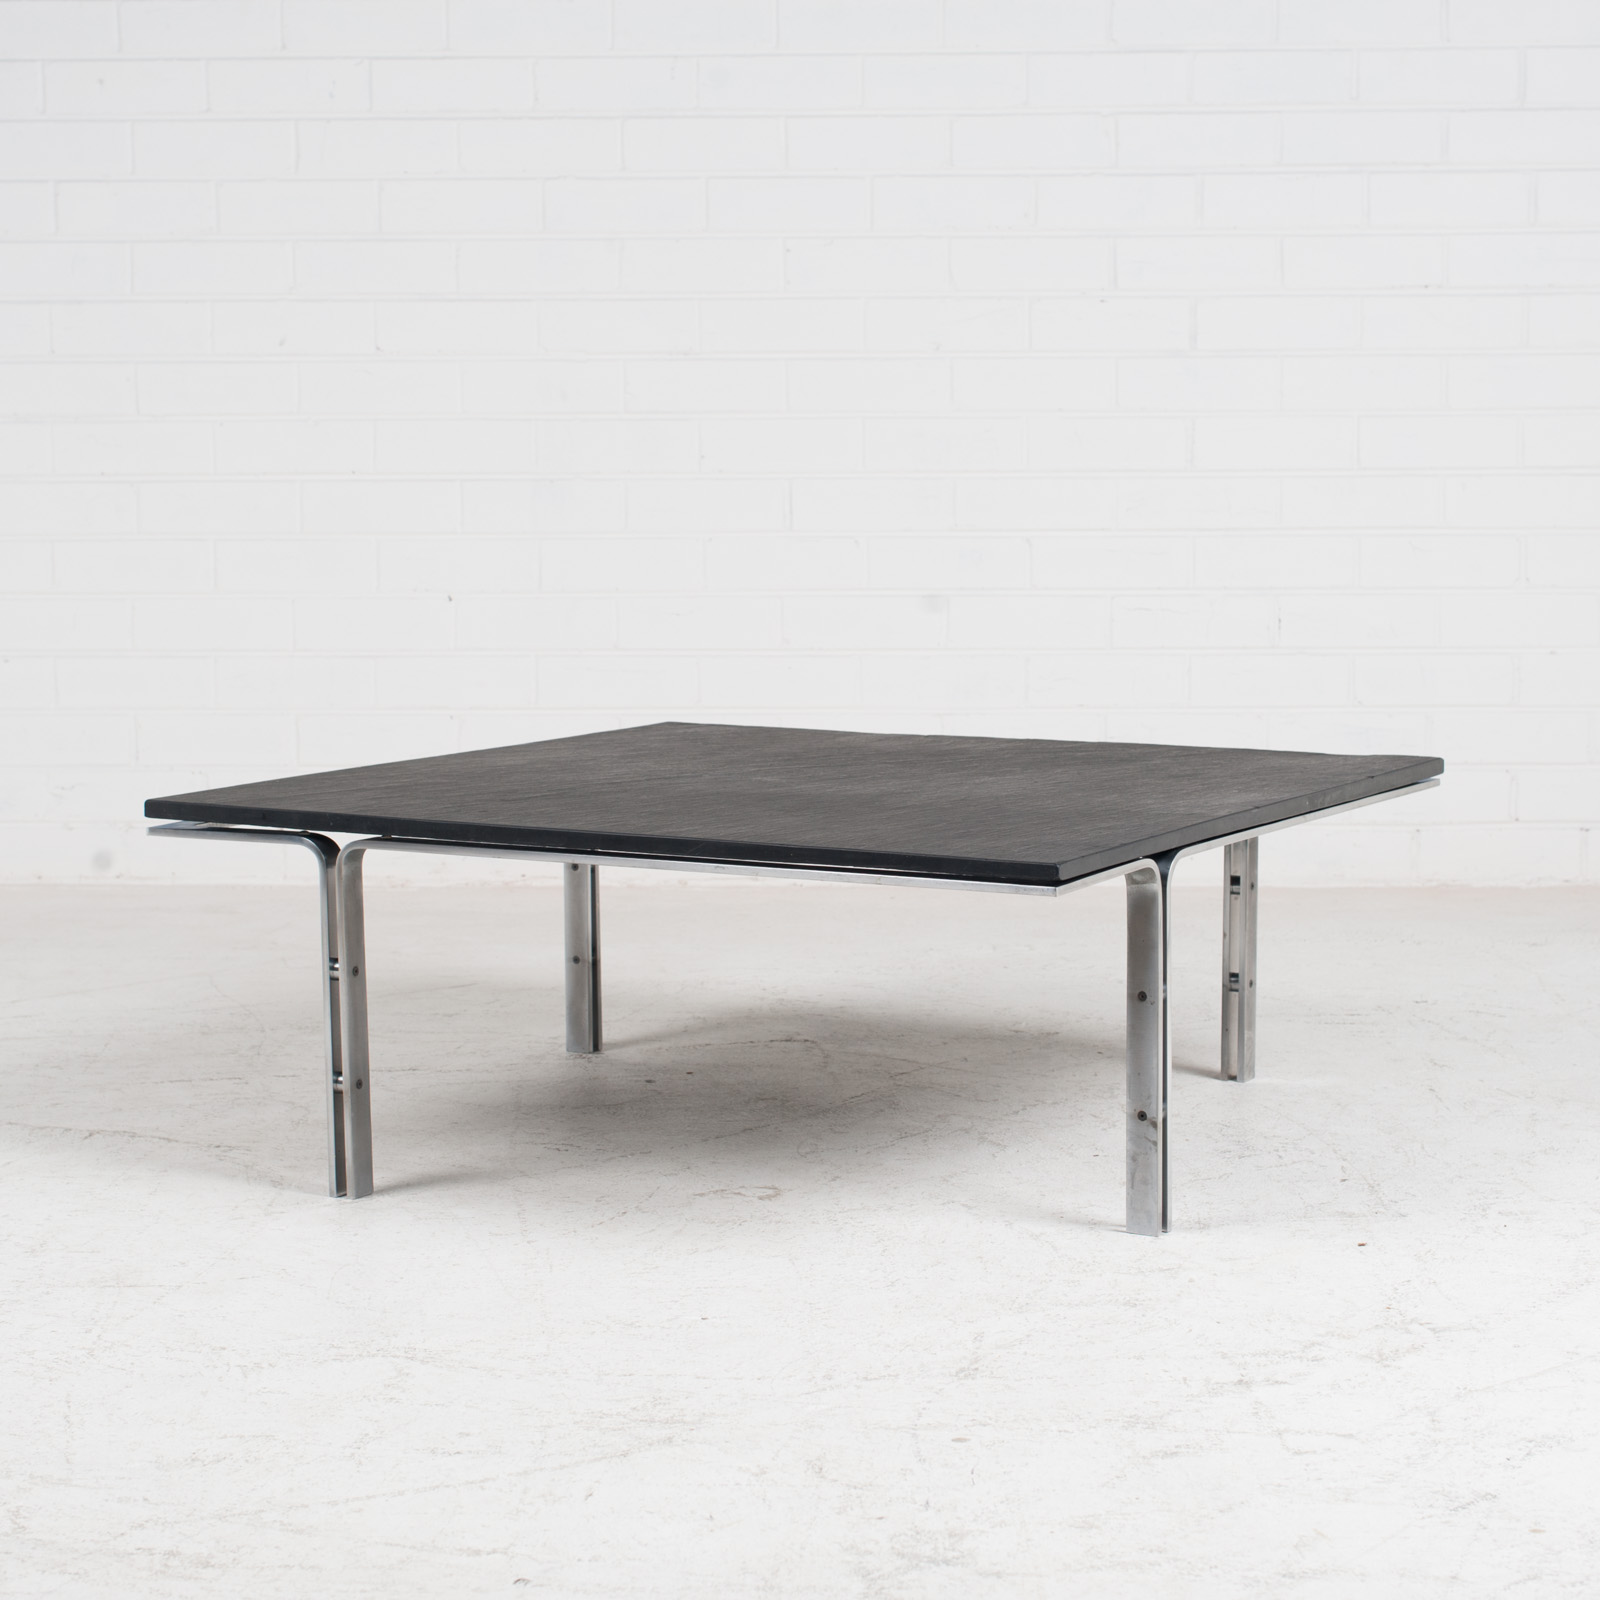 Coffee Table By Hank Kwint For Metaform In Slate And Chrome 1970s Netherlands 02